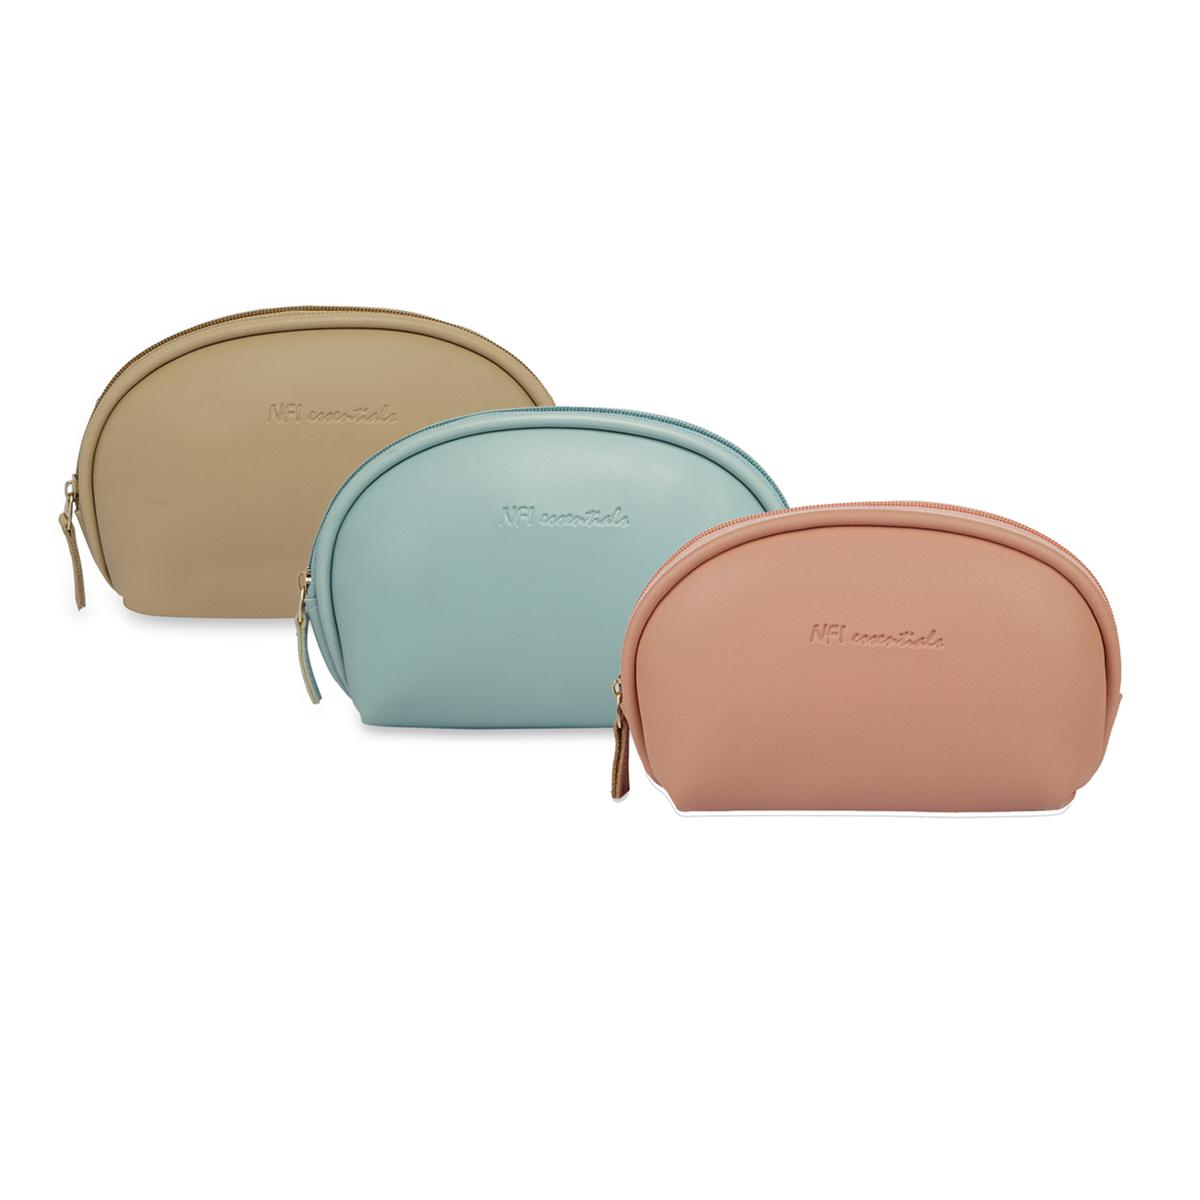 NFI essentials - Cosmetic Pouch | Travel Bag (Light Blue, Light Pink & Beige)- Pack of 3